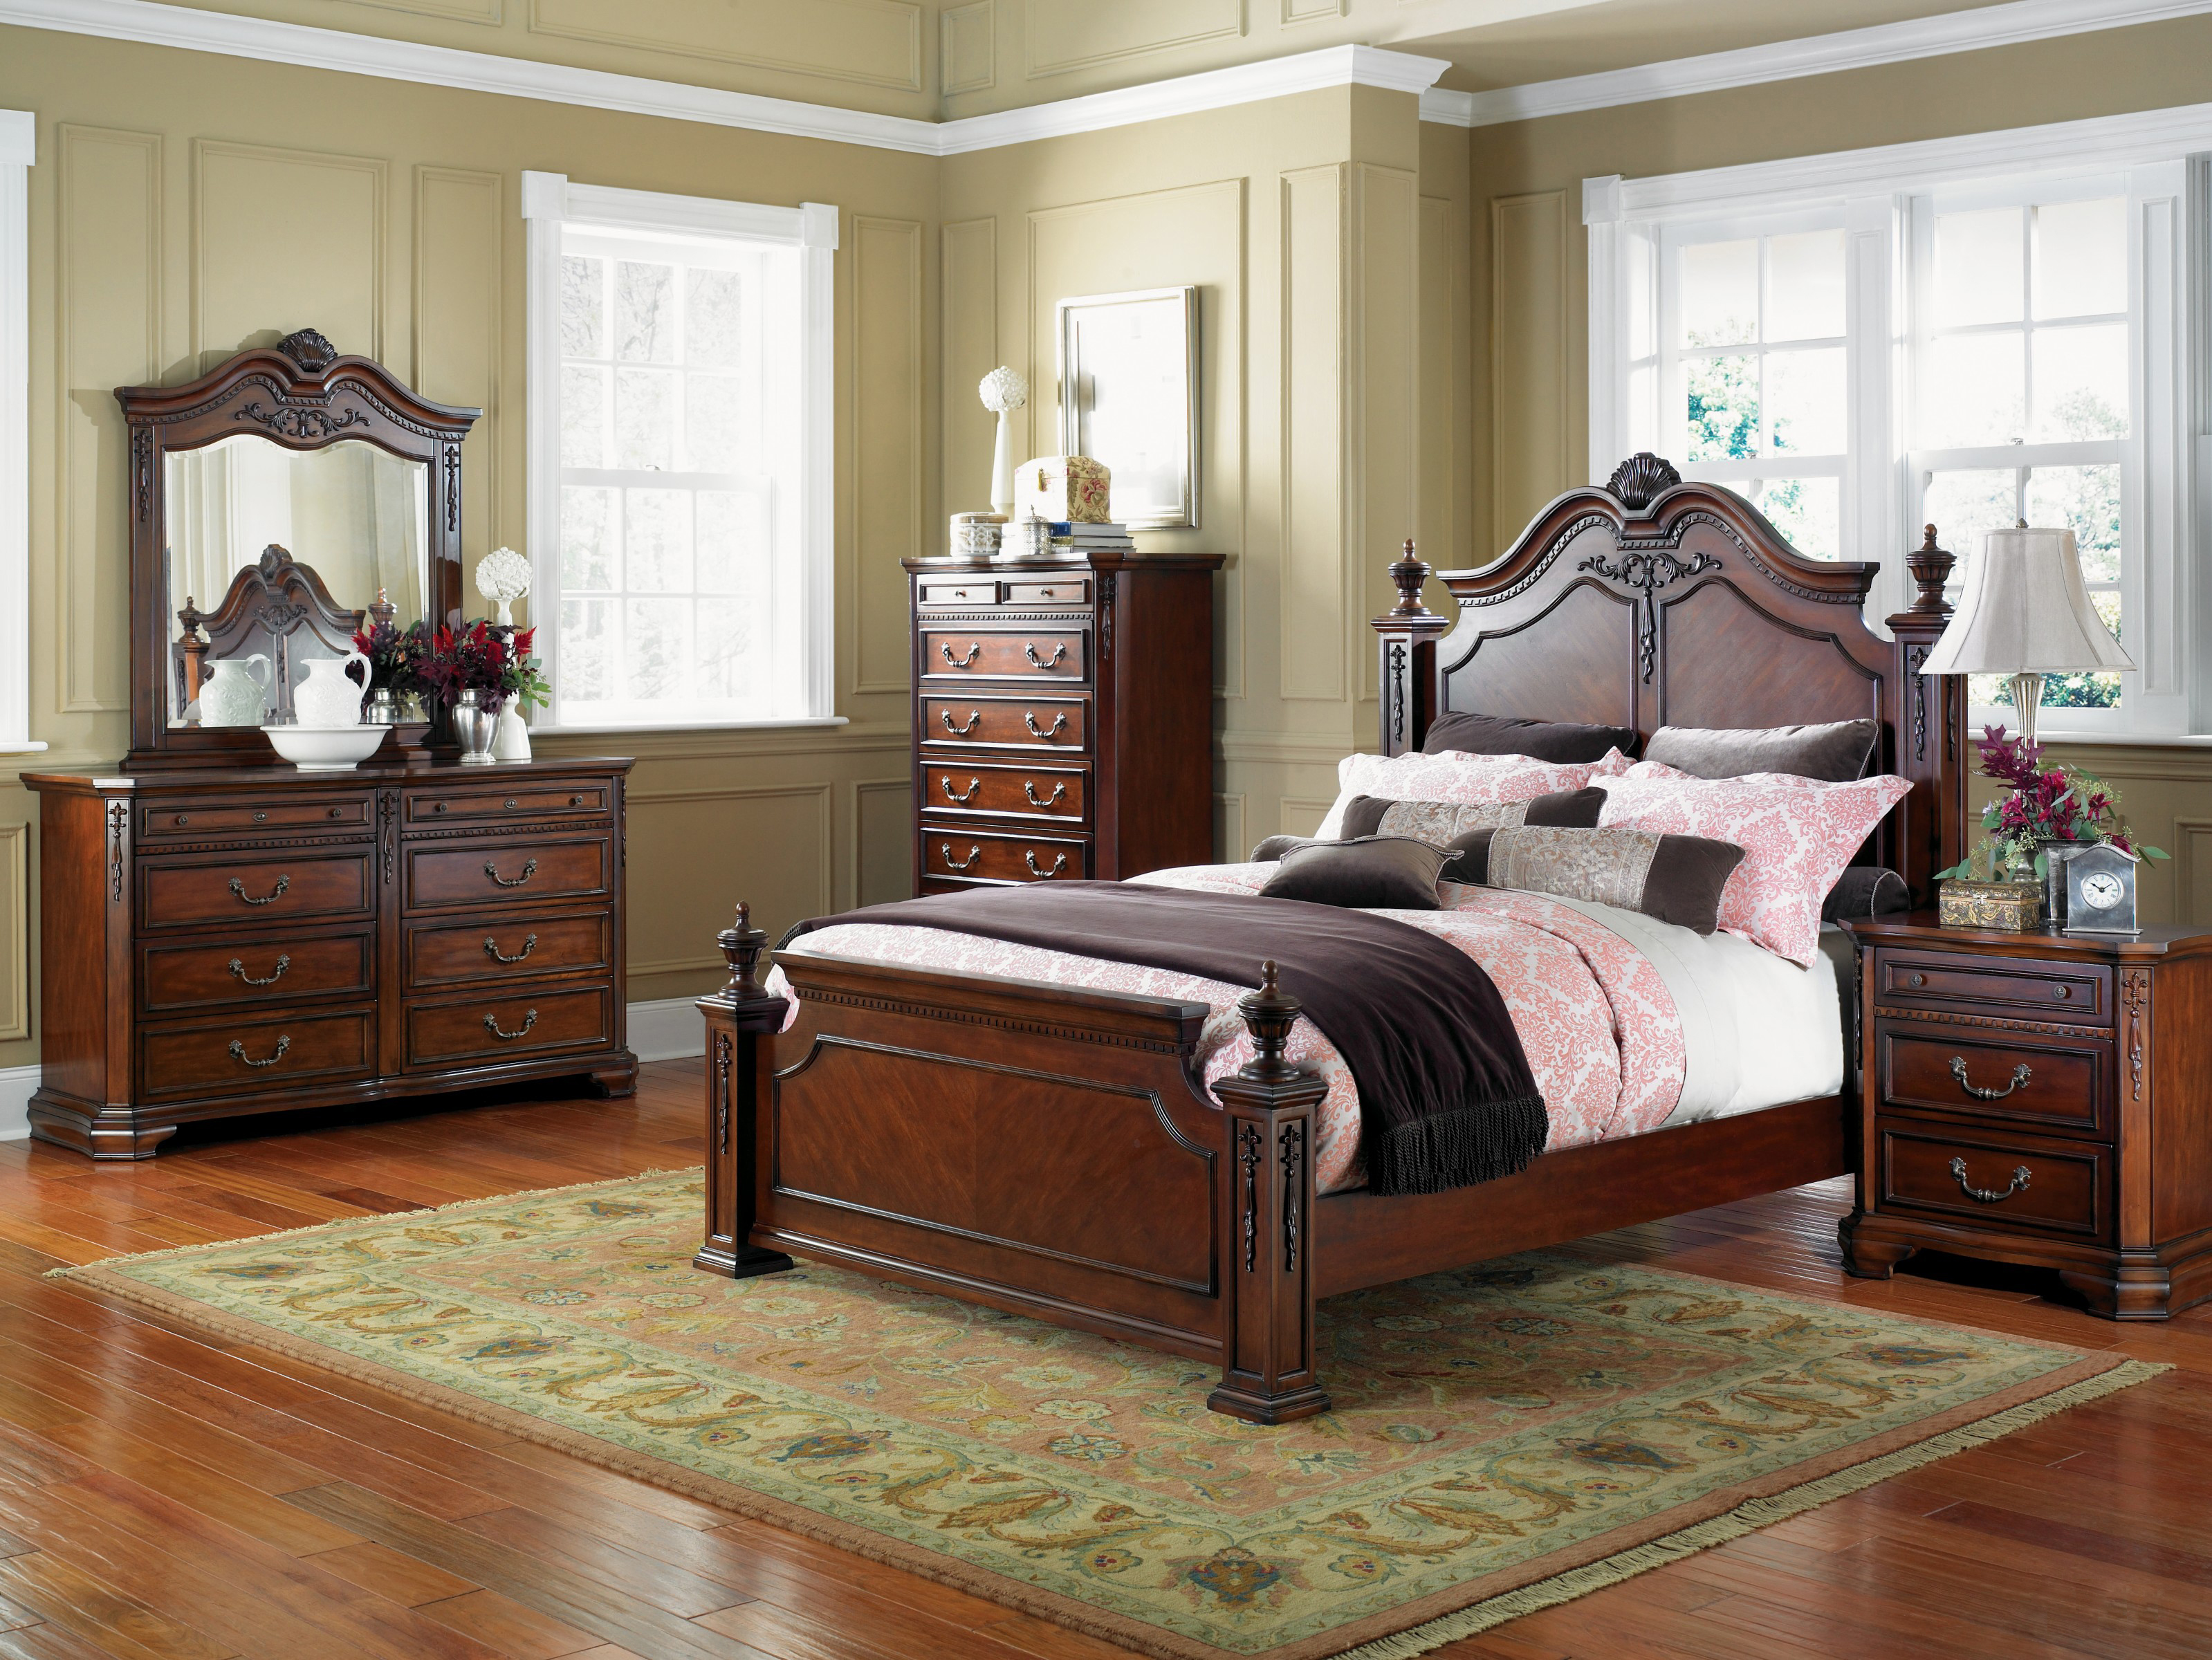 Bedroom furniture - Furniture picture ...